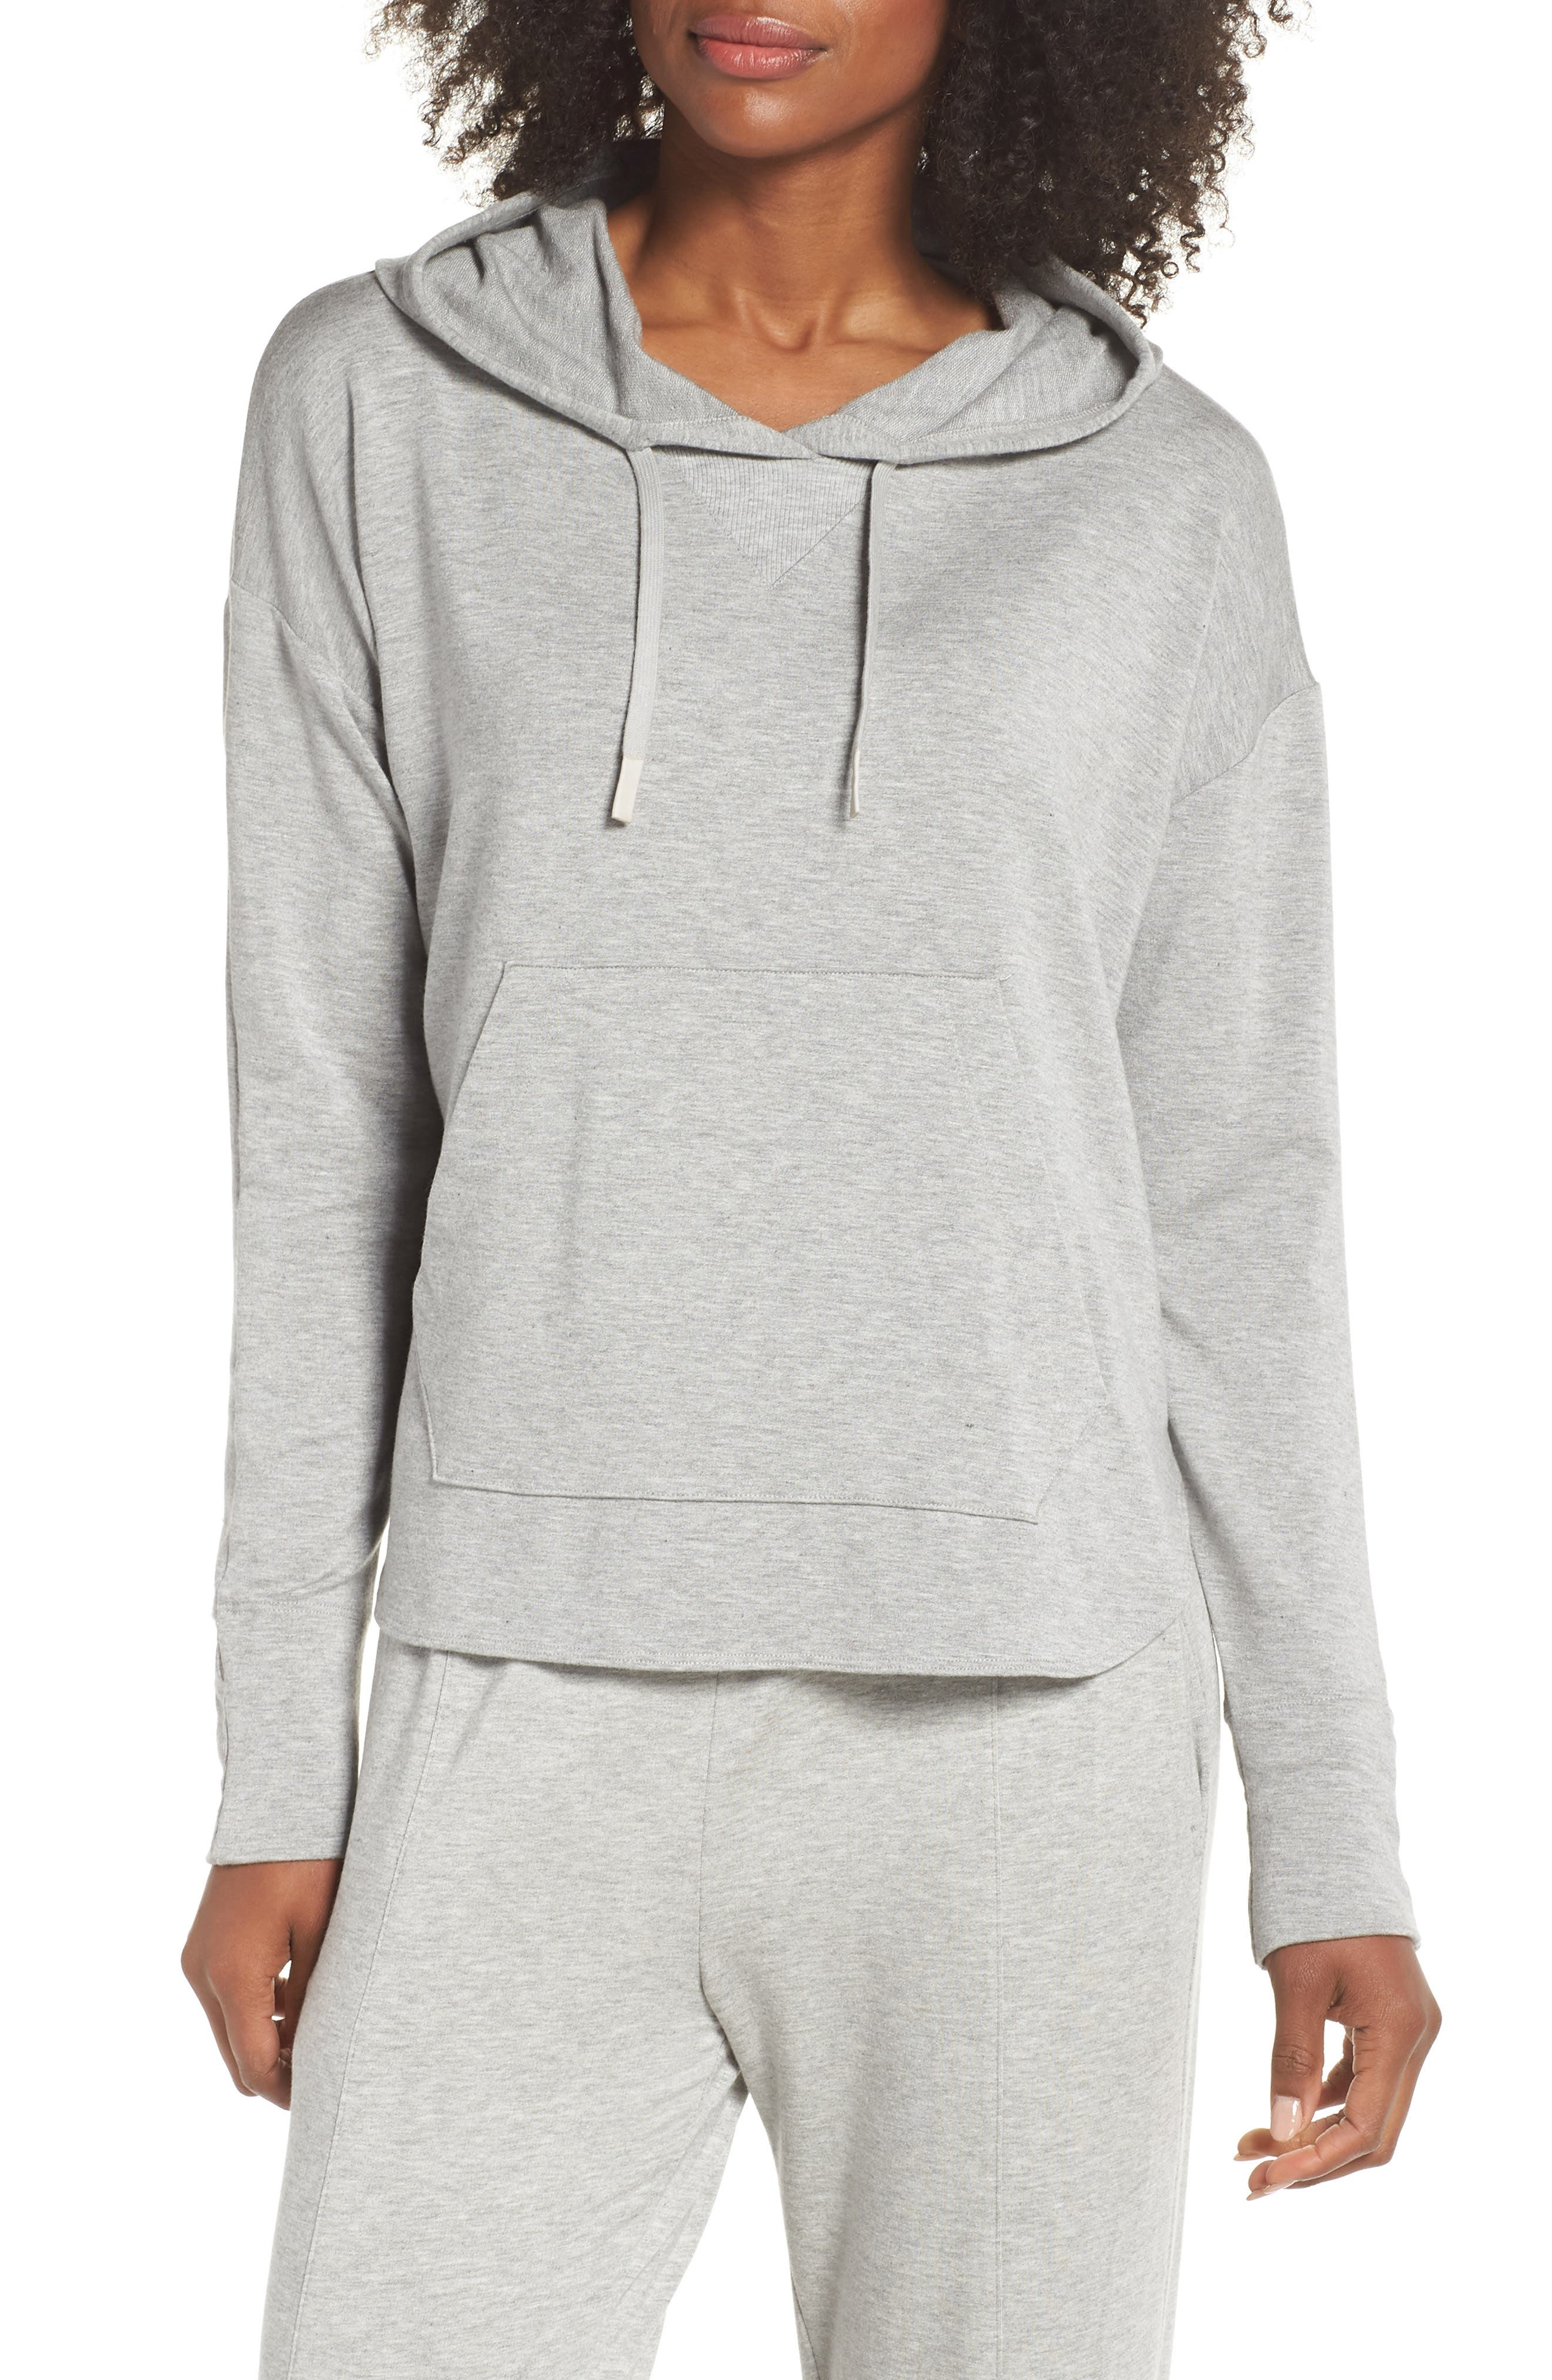 Pacific Hoodie,                             Main thumbnail 1, color,                             Light Heather Grey